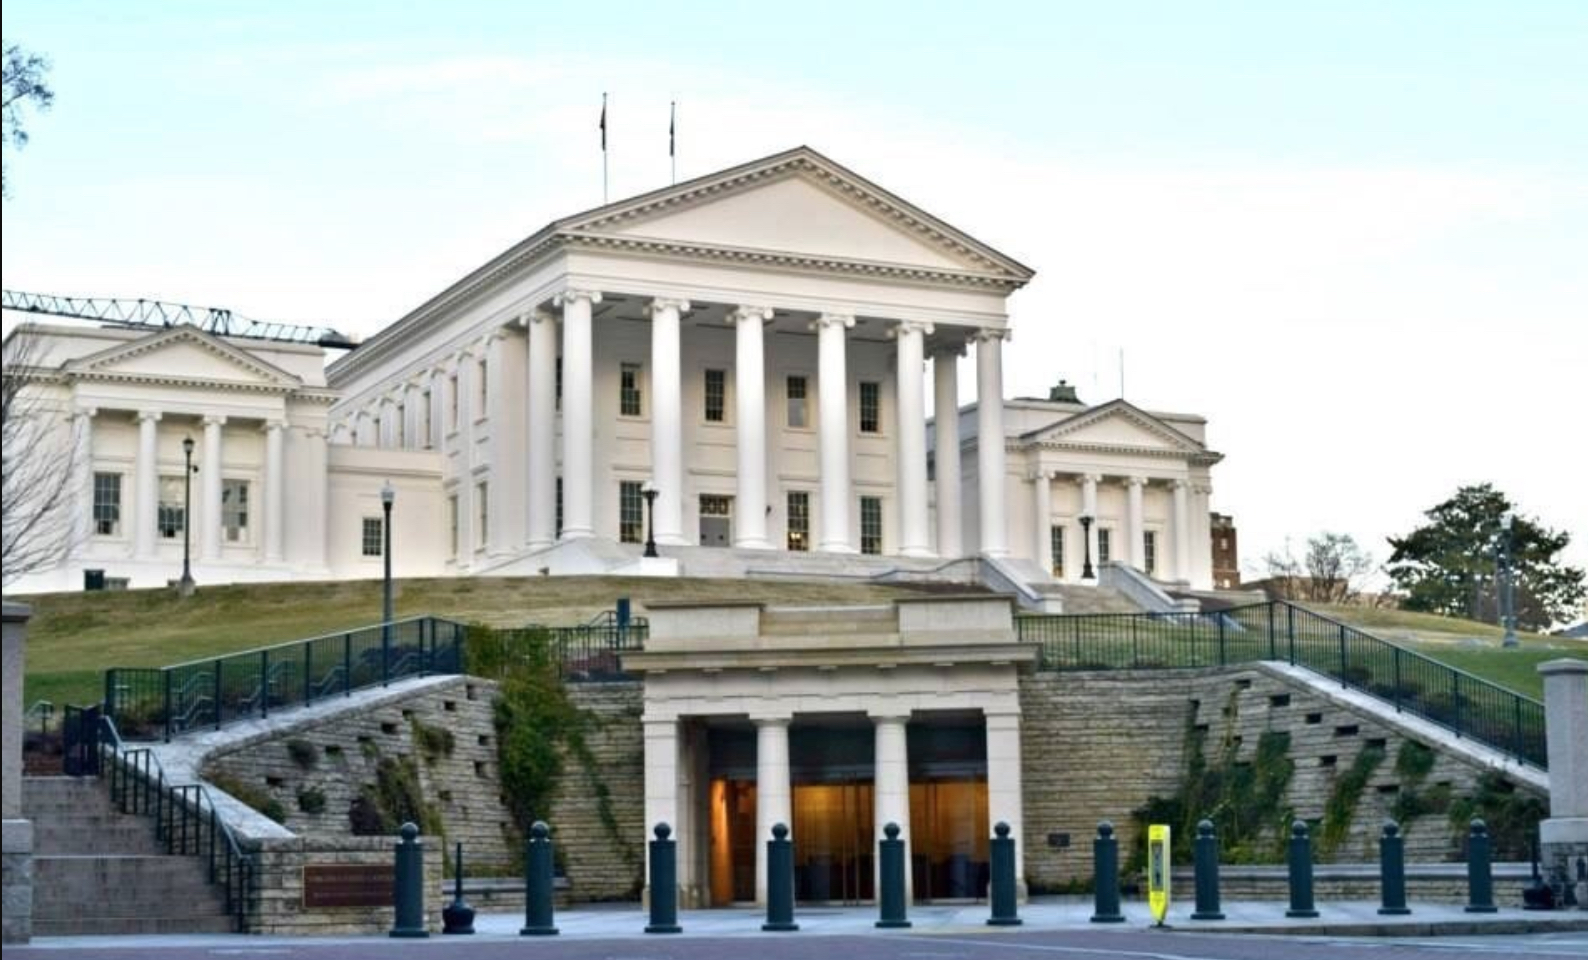 Virginia Capitol Bldg